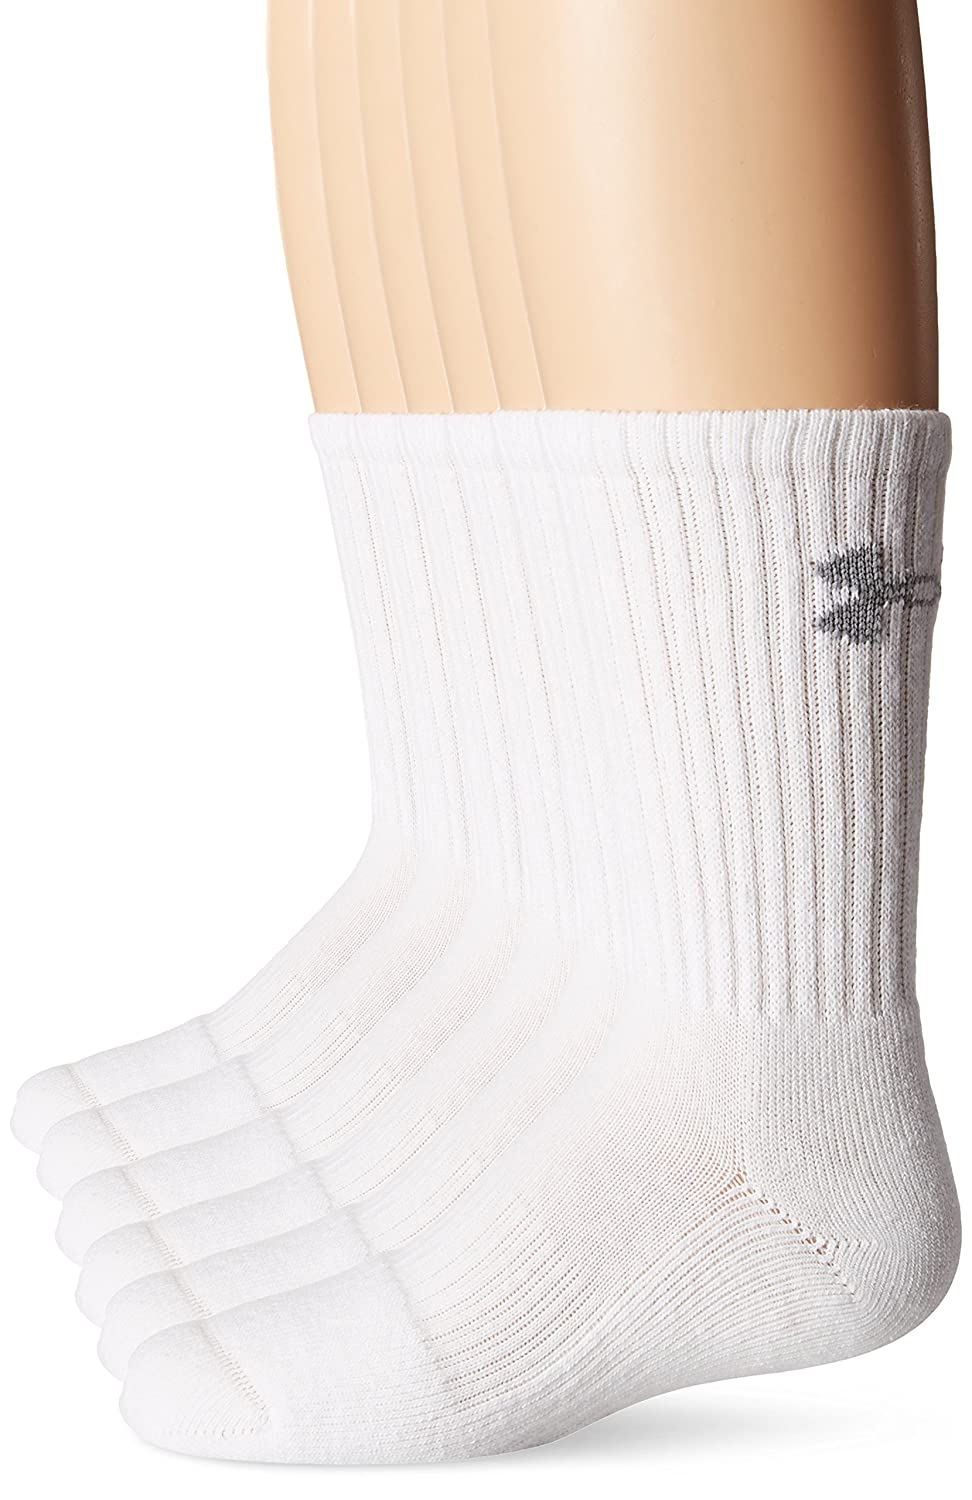 Under Armour Youth Crew Socks (6-Pair) Solid Black Youth Large Under Armour Socks UA 2879